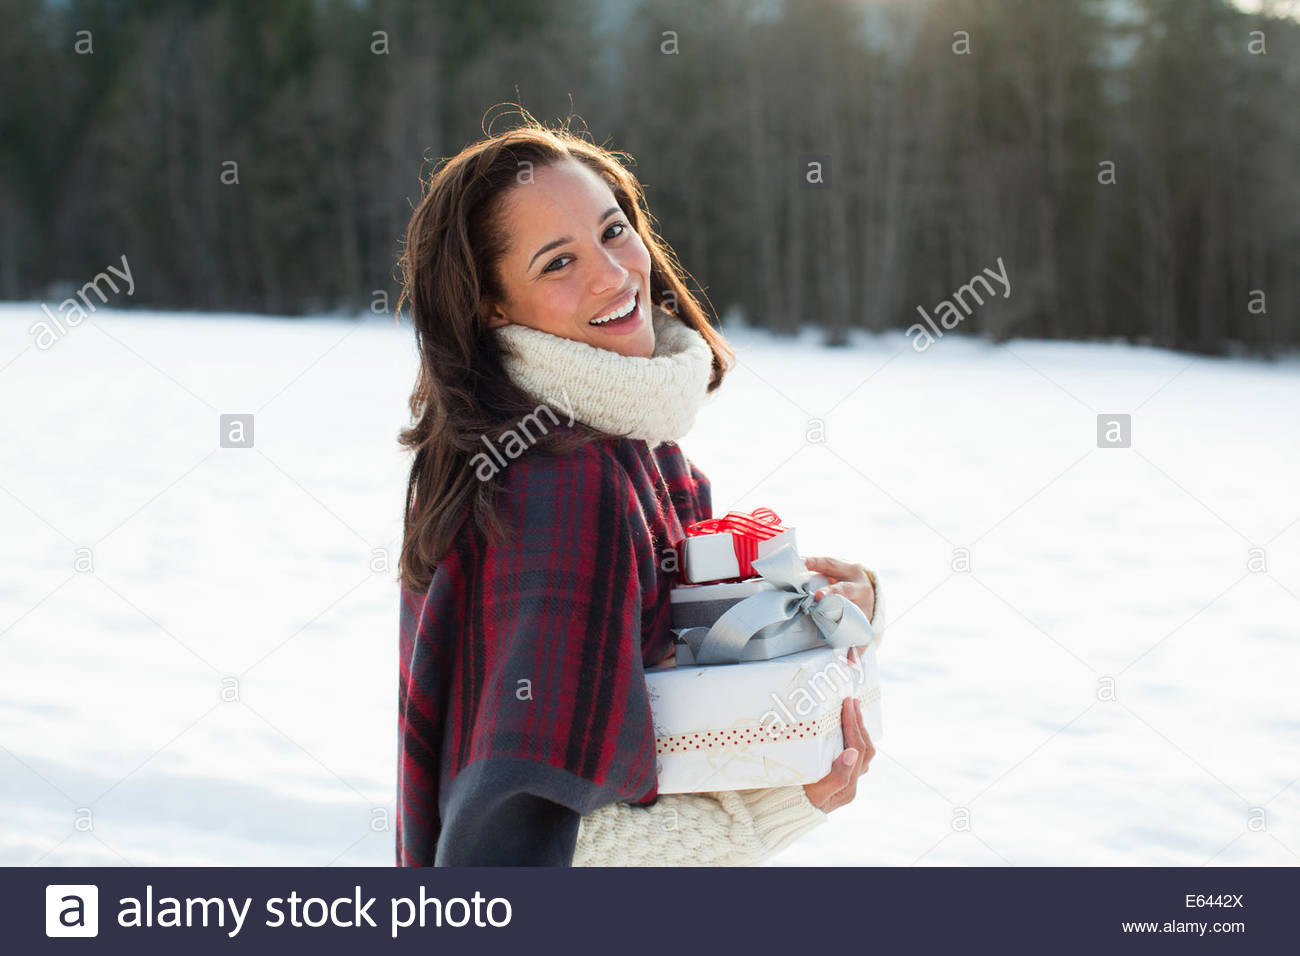 Portrait of smiling woman holding Christmas gifts in snow Photo Stock